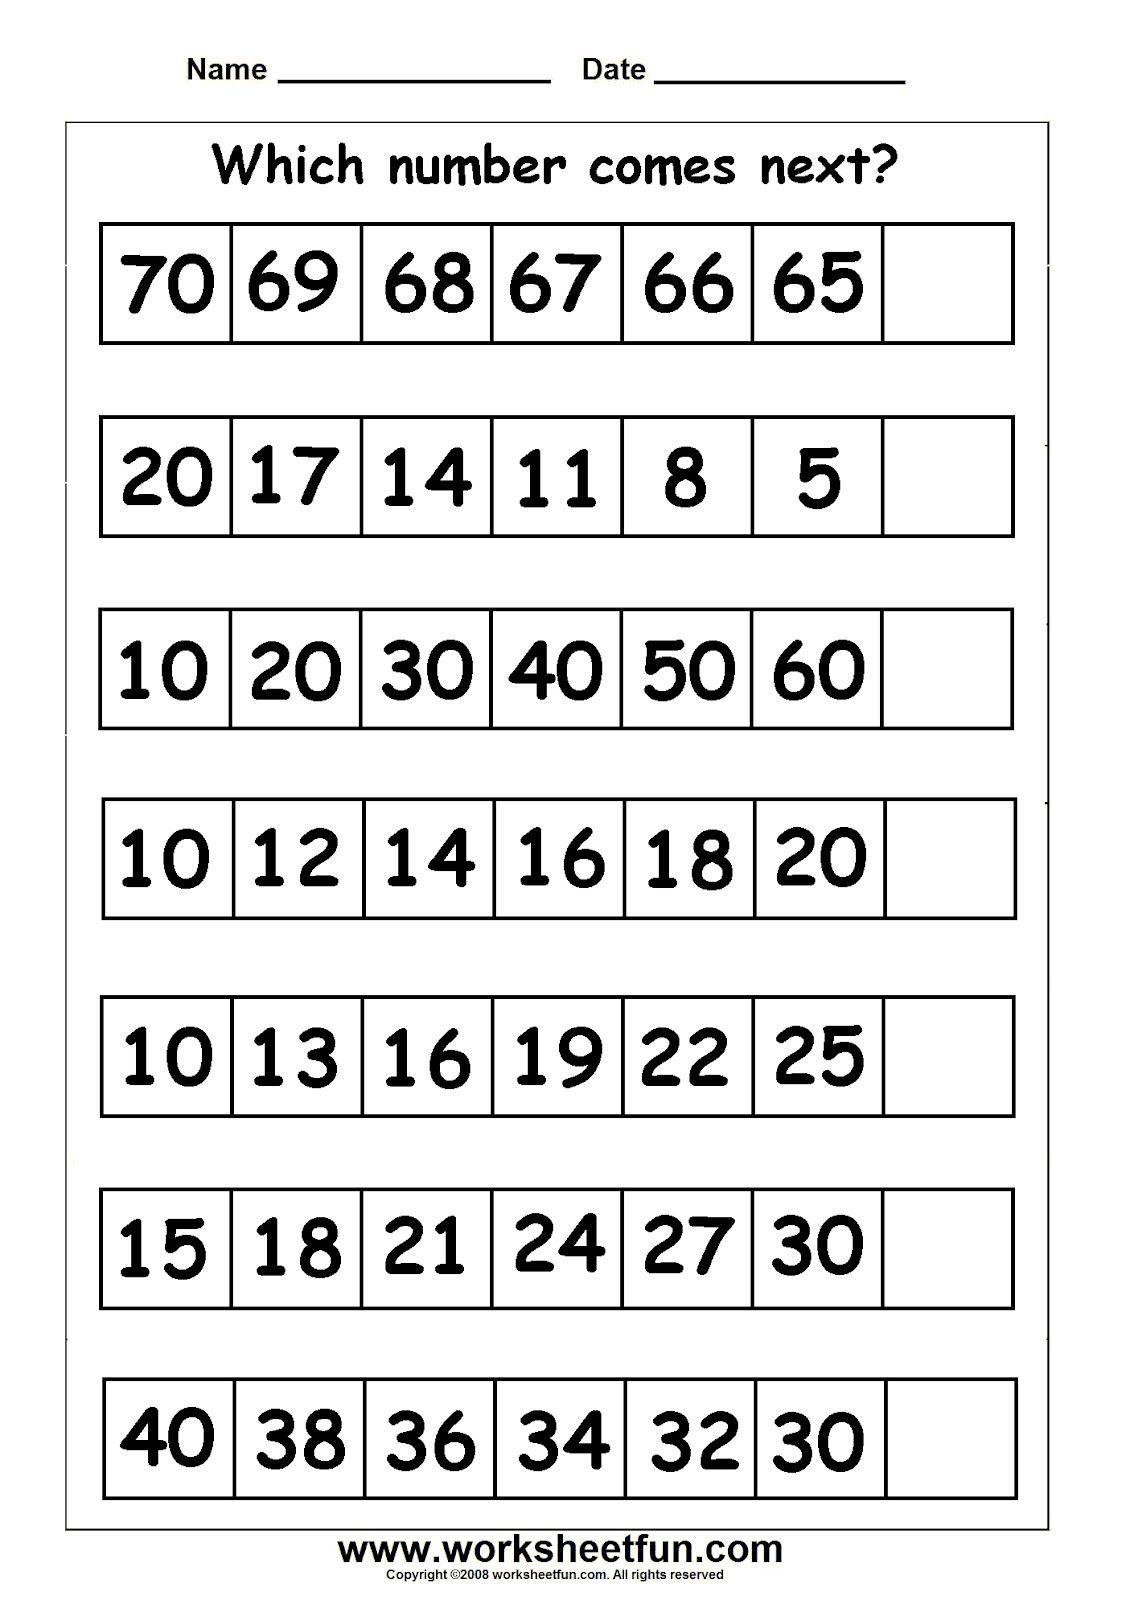 hight resolution of Tenth Grade Pattern Worksheet   Printable Worksheets and Activities for  Teachers